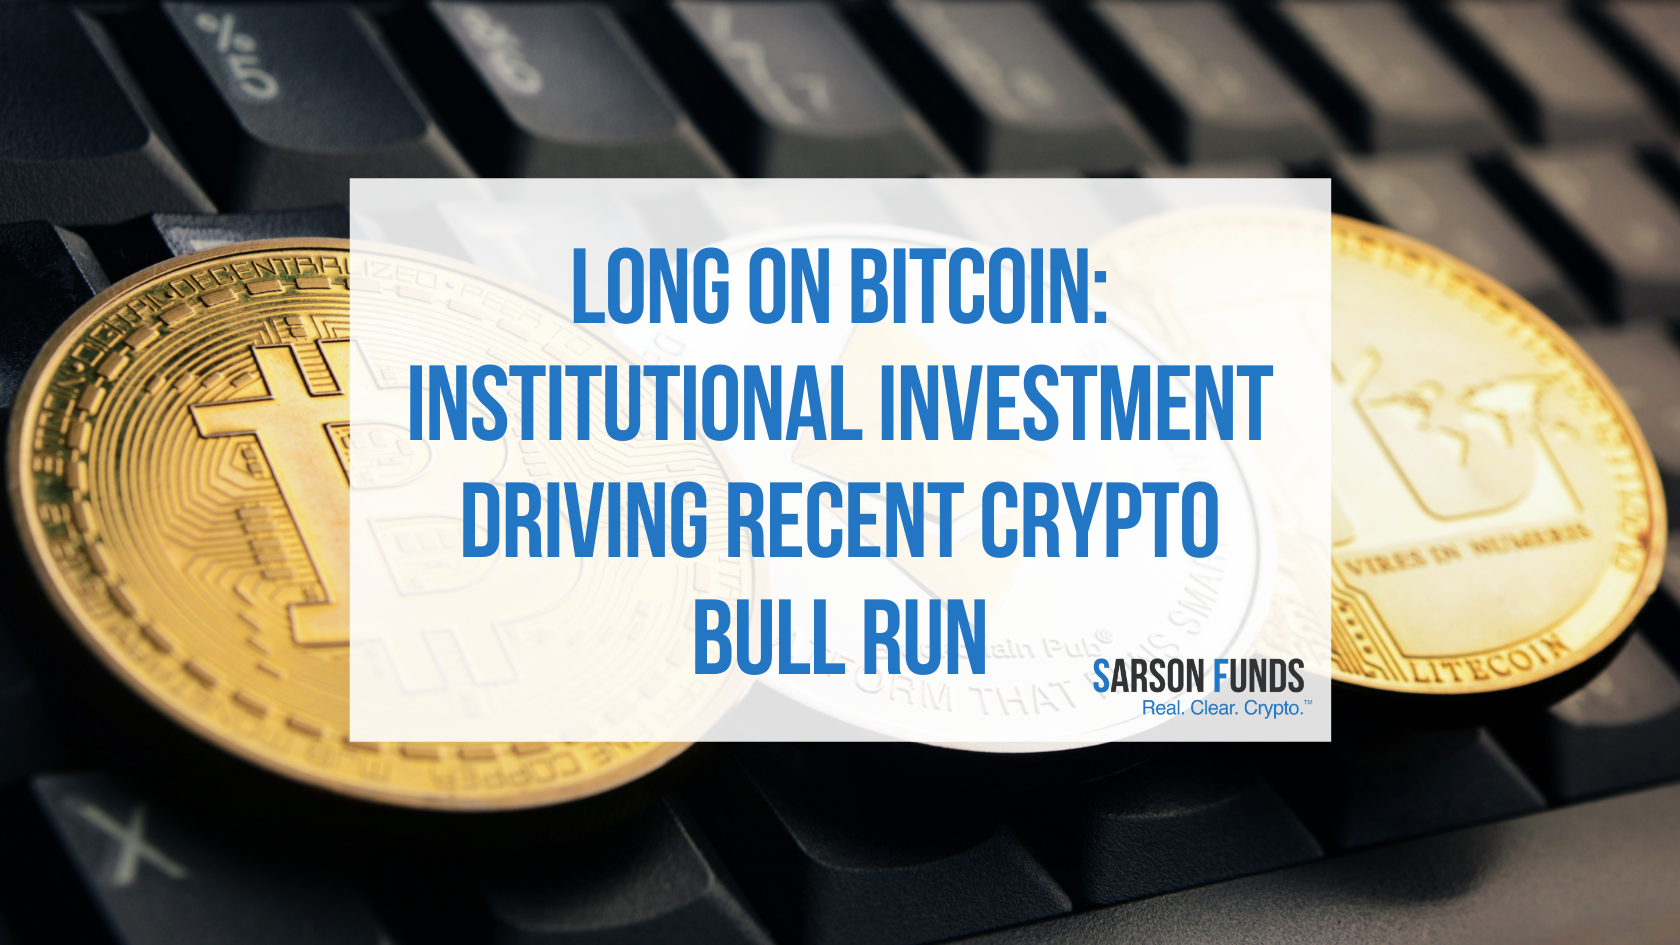 Institutions Driving Recent Crypto Bull Run